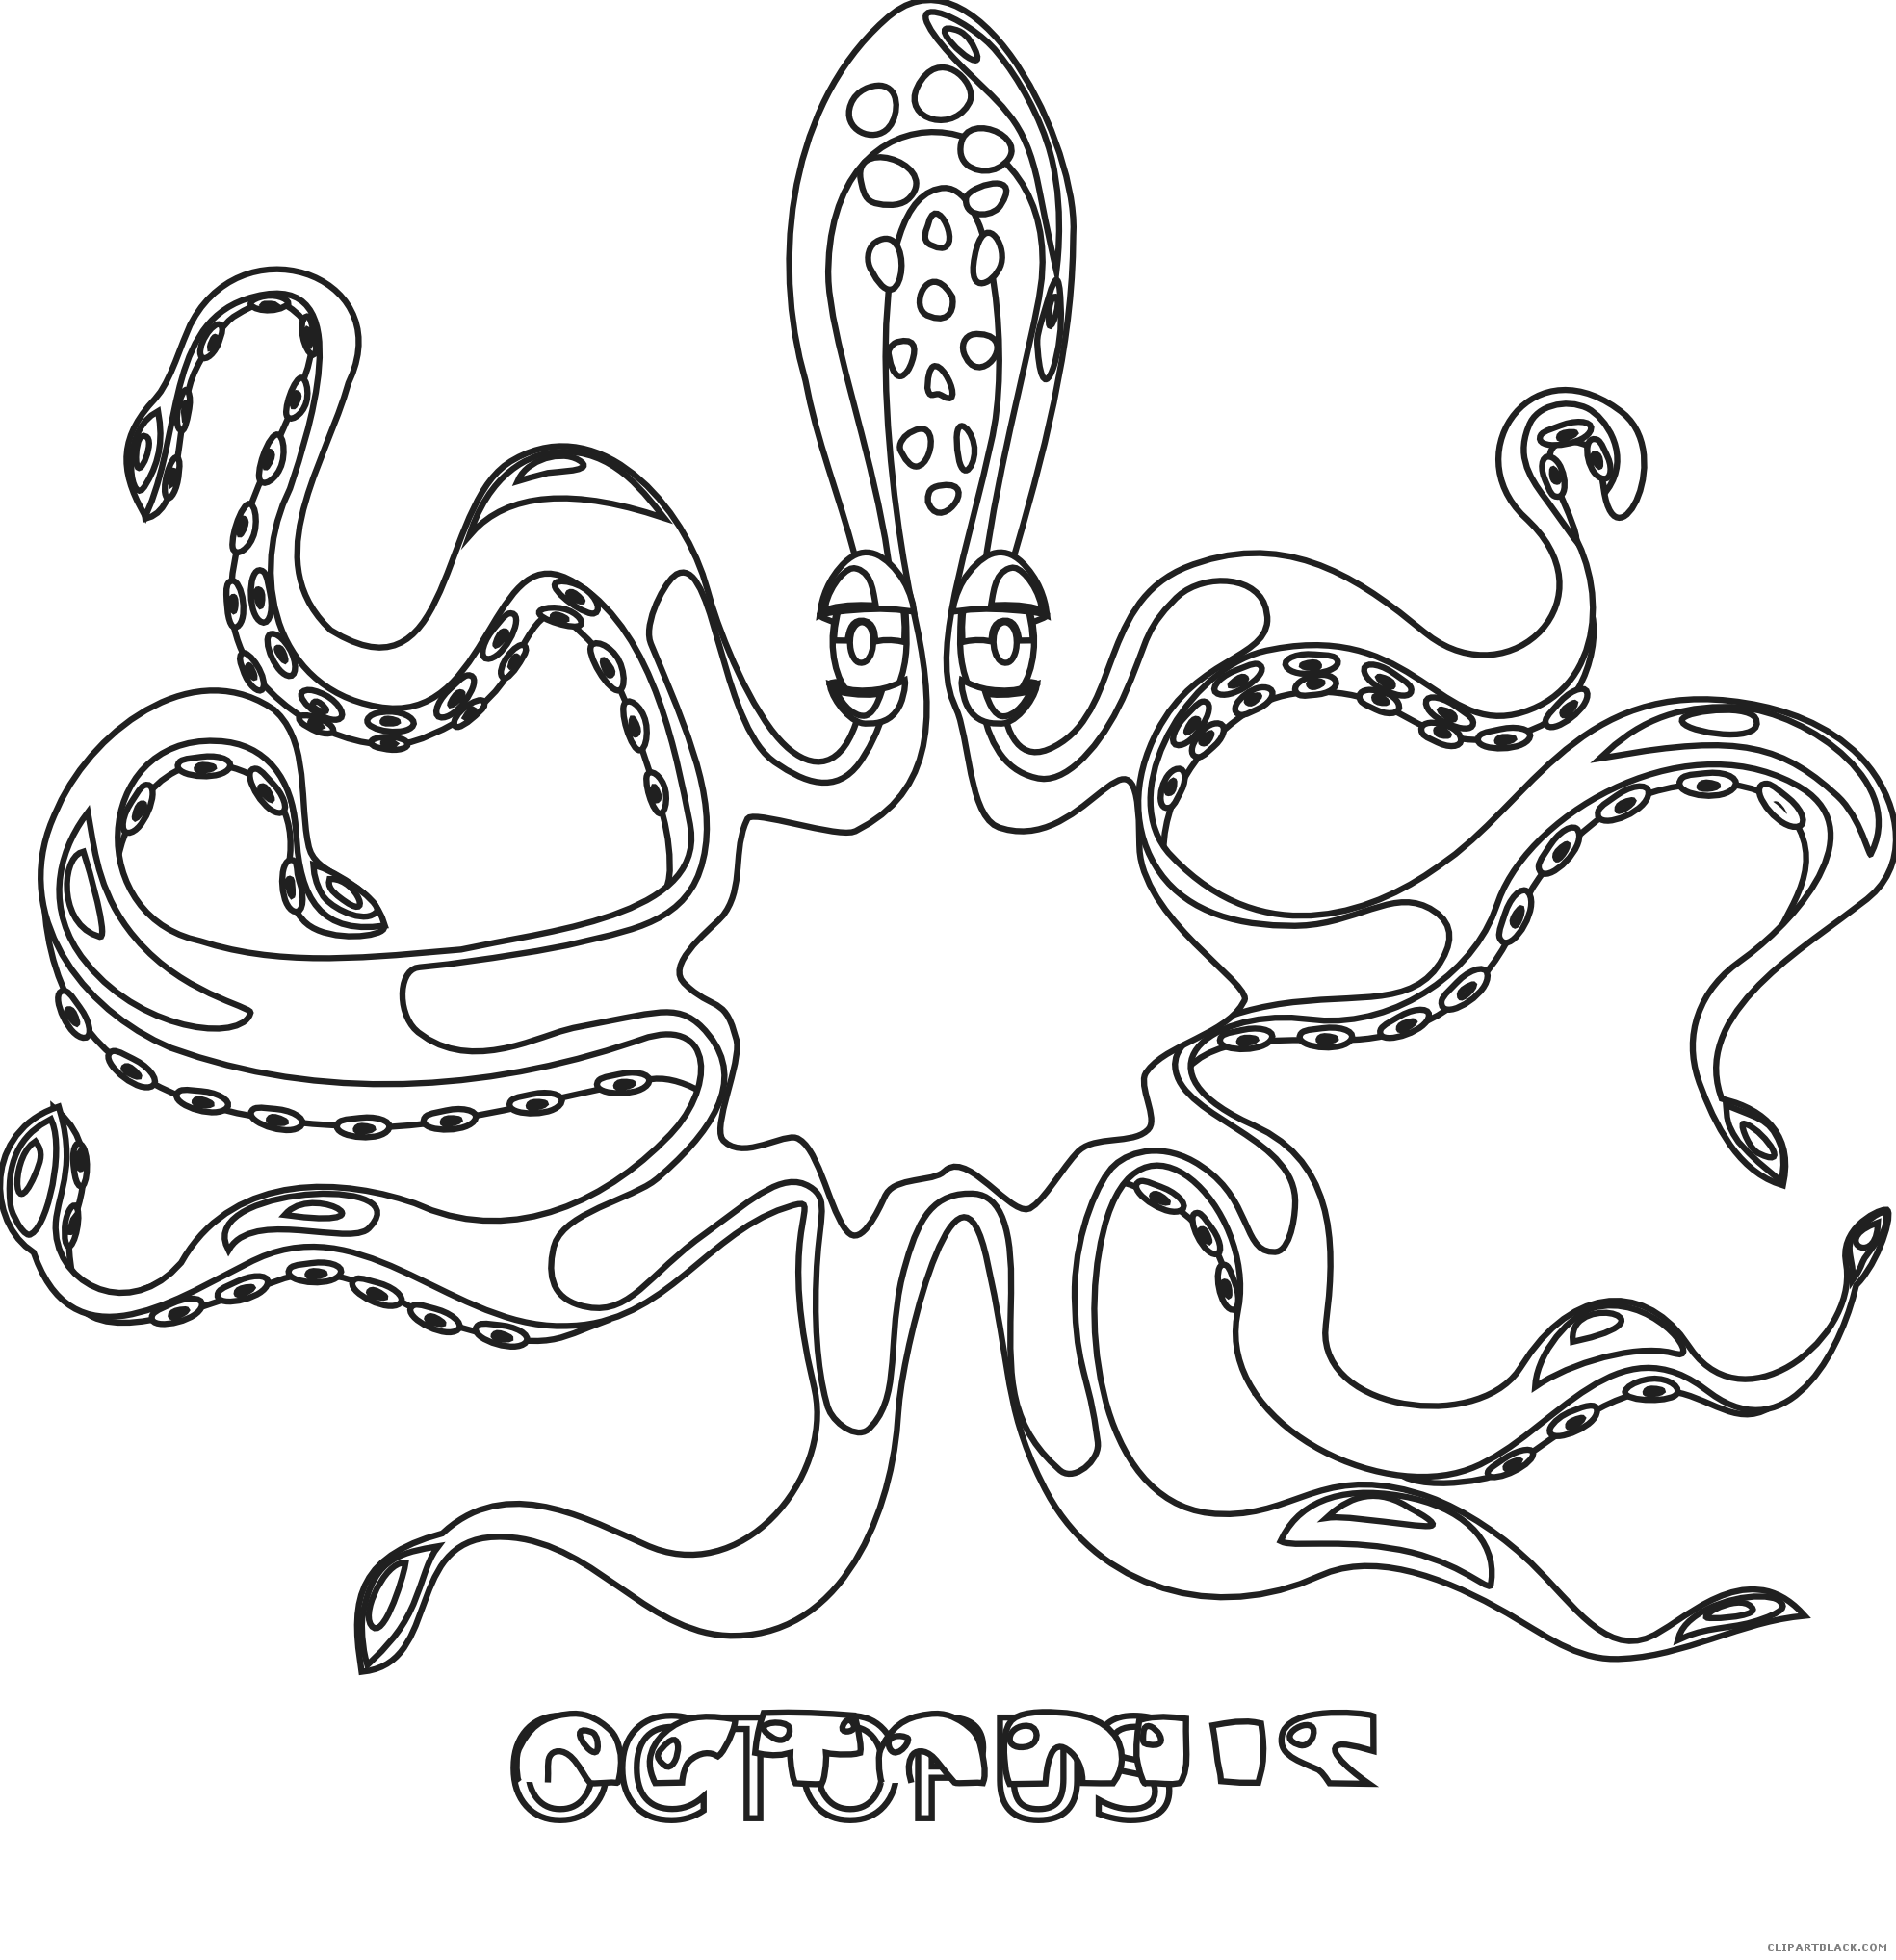 Coloring book clipartblack com. Clipart octopus black and white